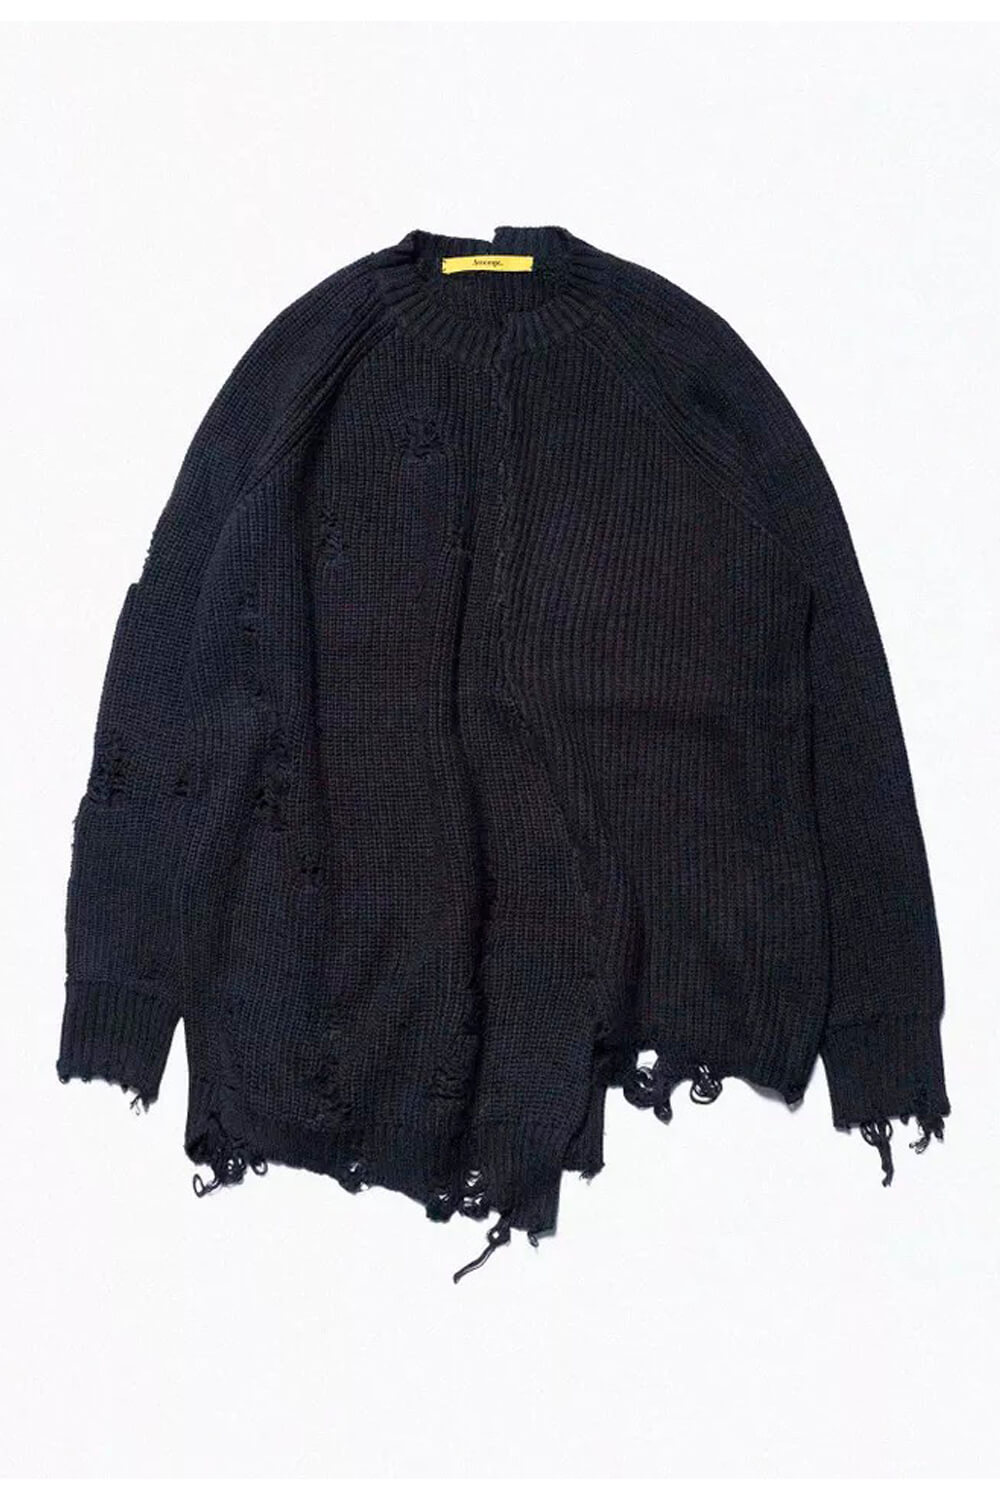 Black Ripped Knitted Grunge Aesthetic Sweater